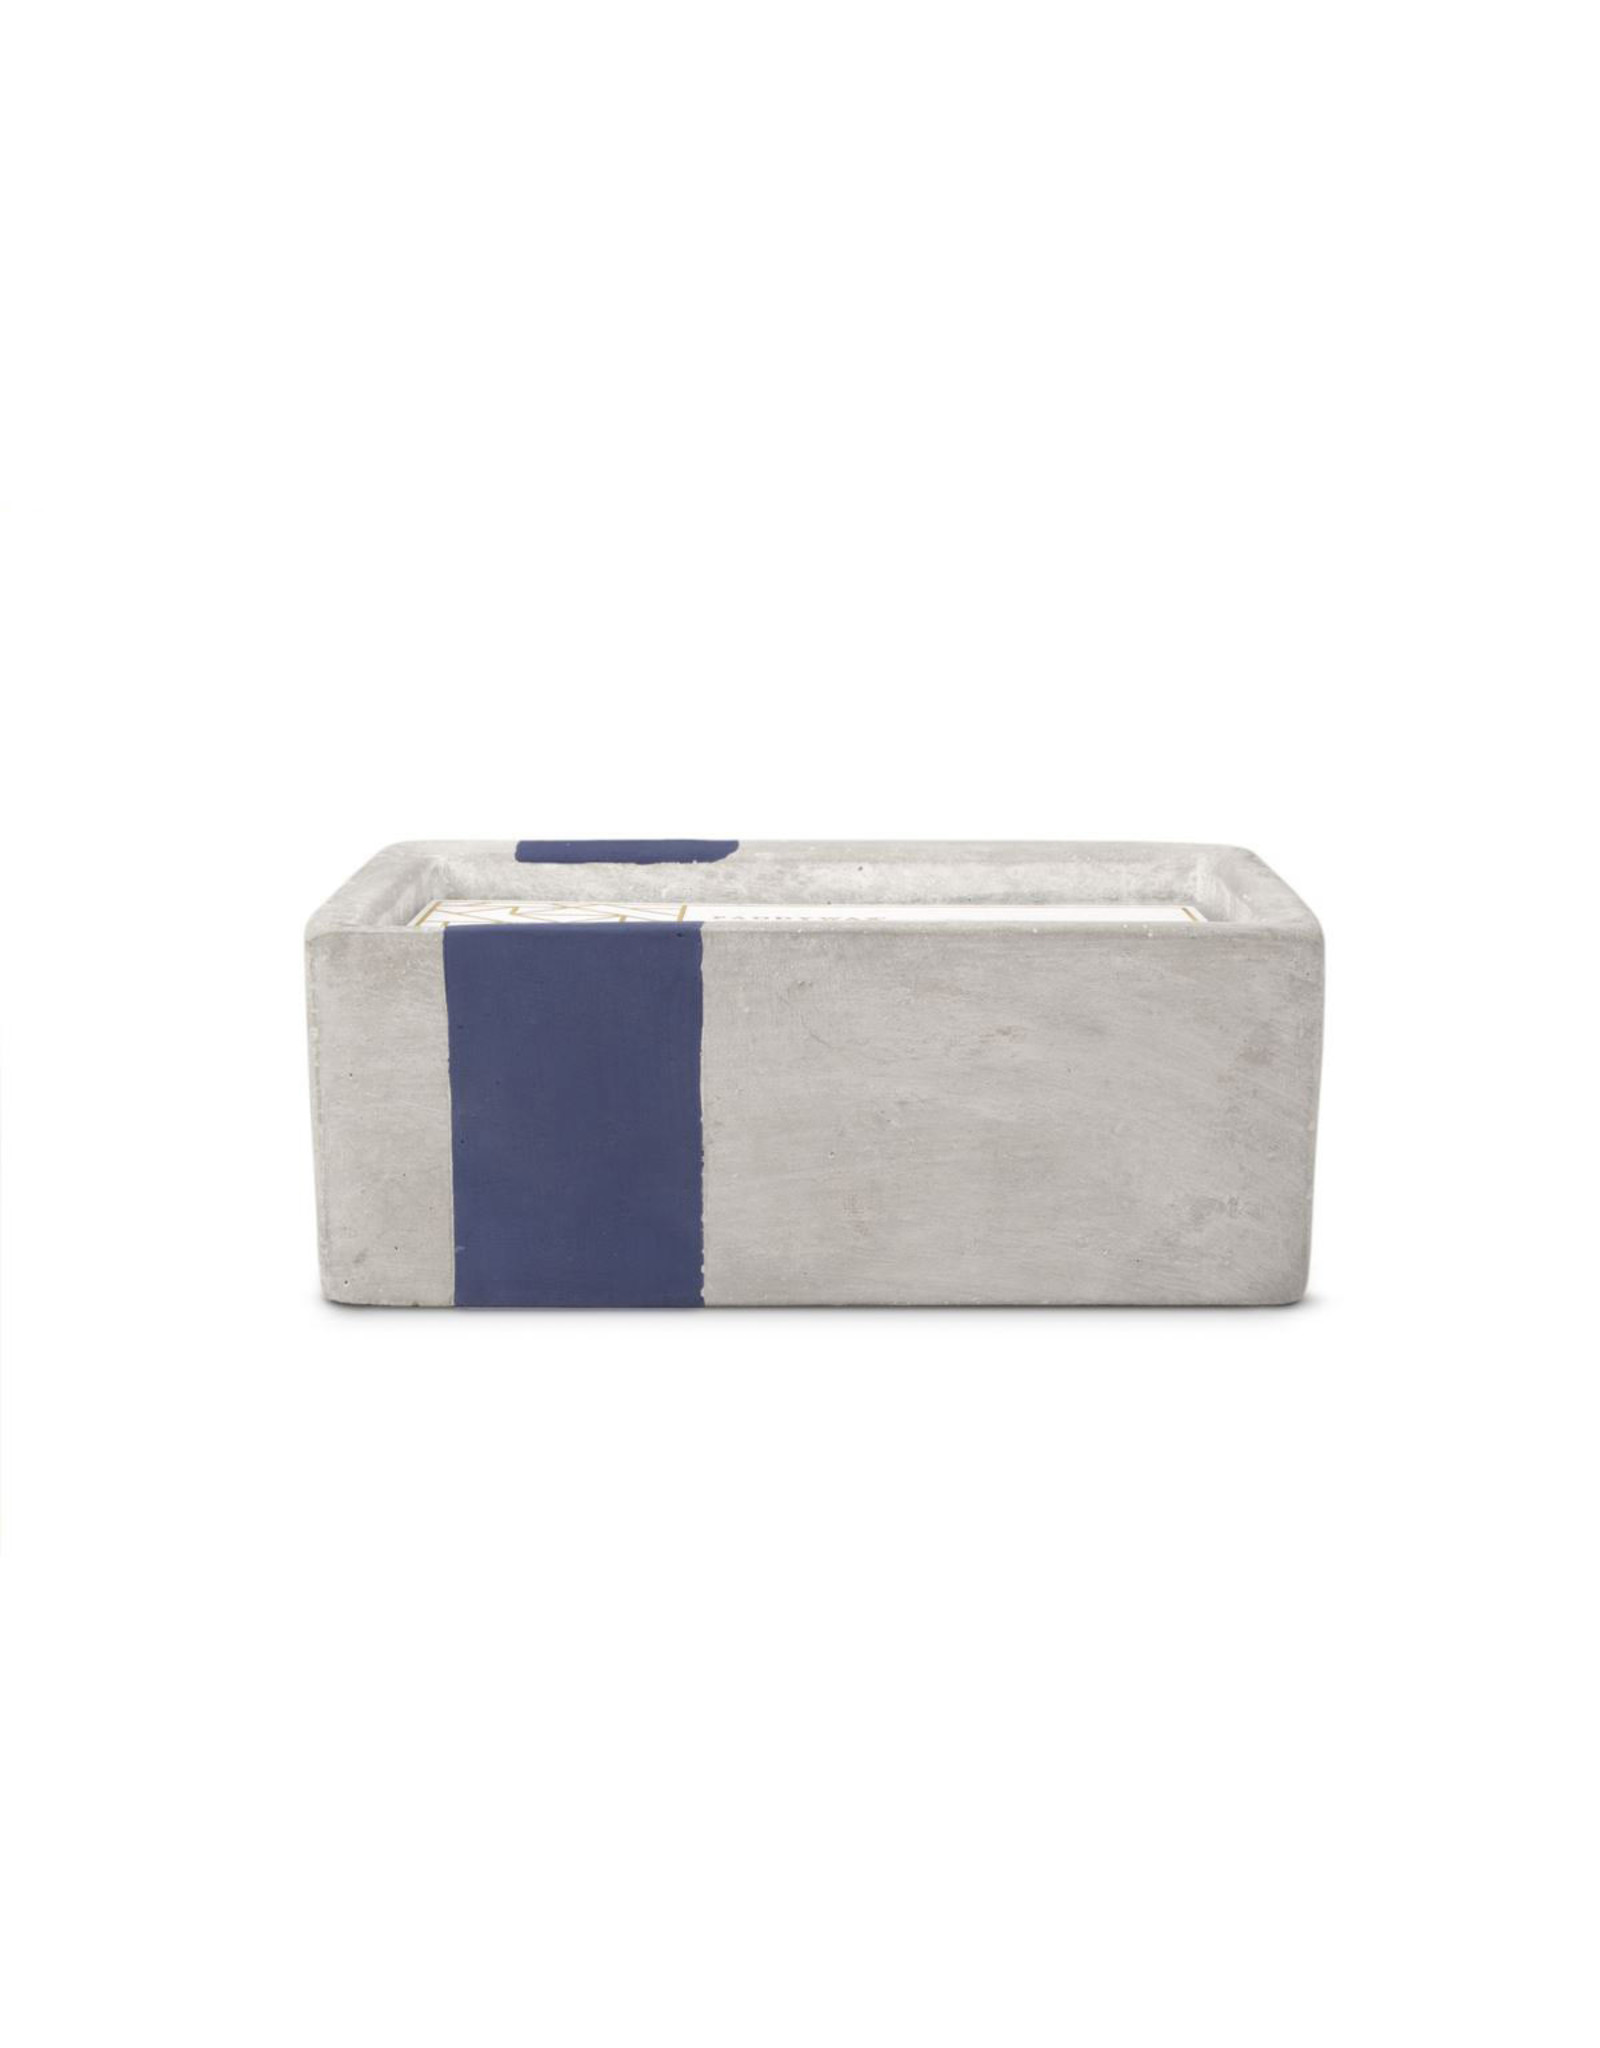 Paddywax Urban 8oz Concrete Rectangle Candle (Small) - Driftwood & Indigo